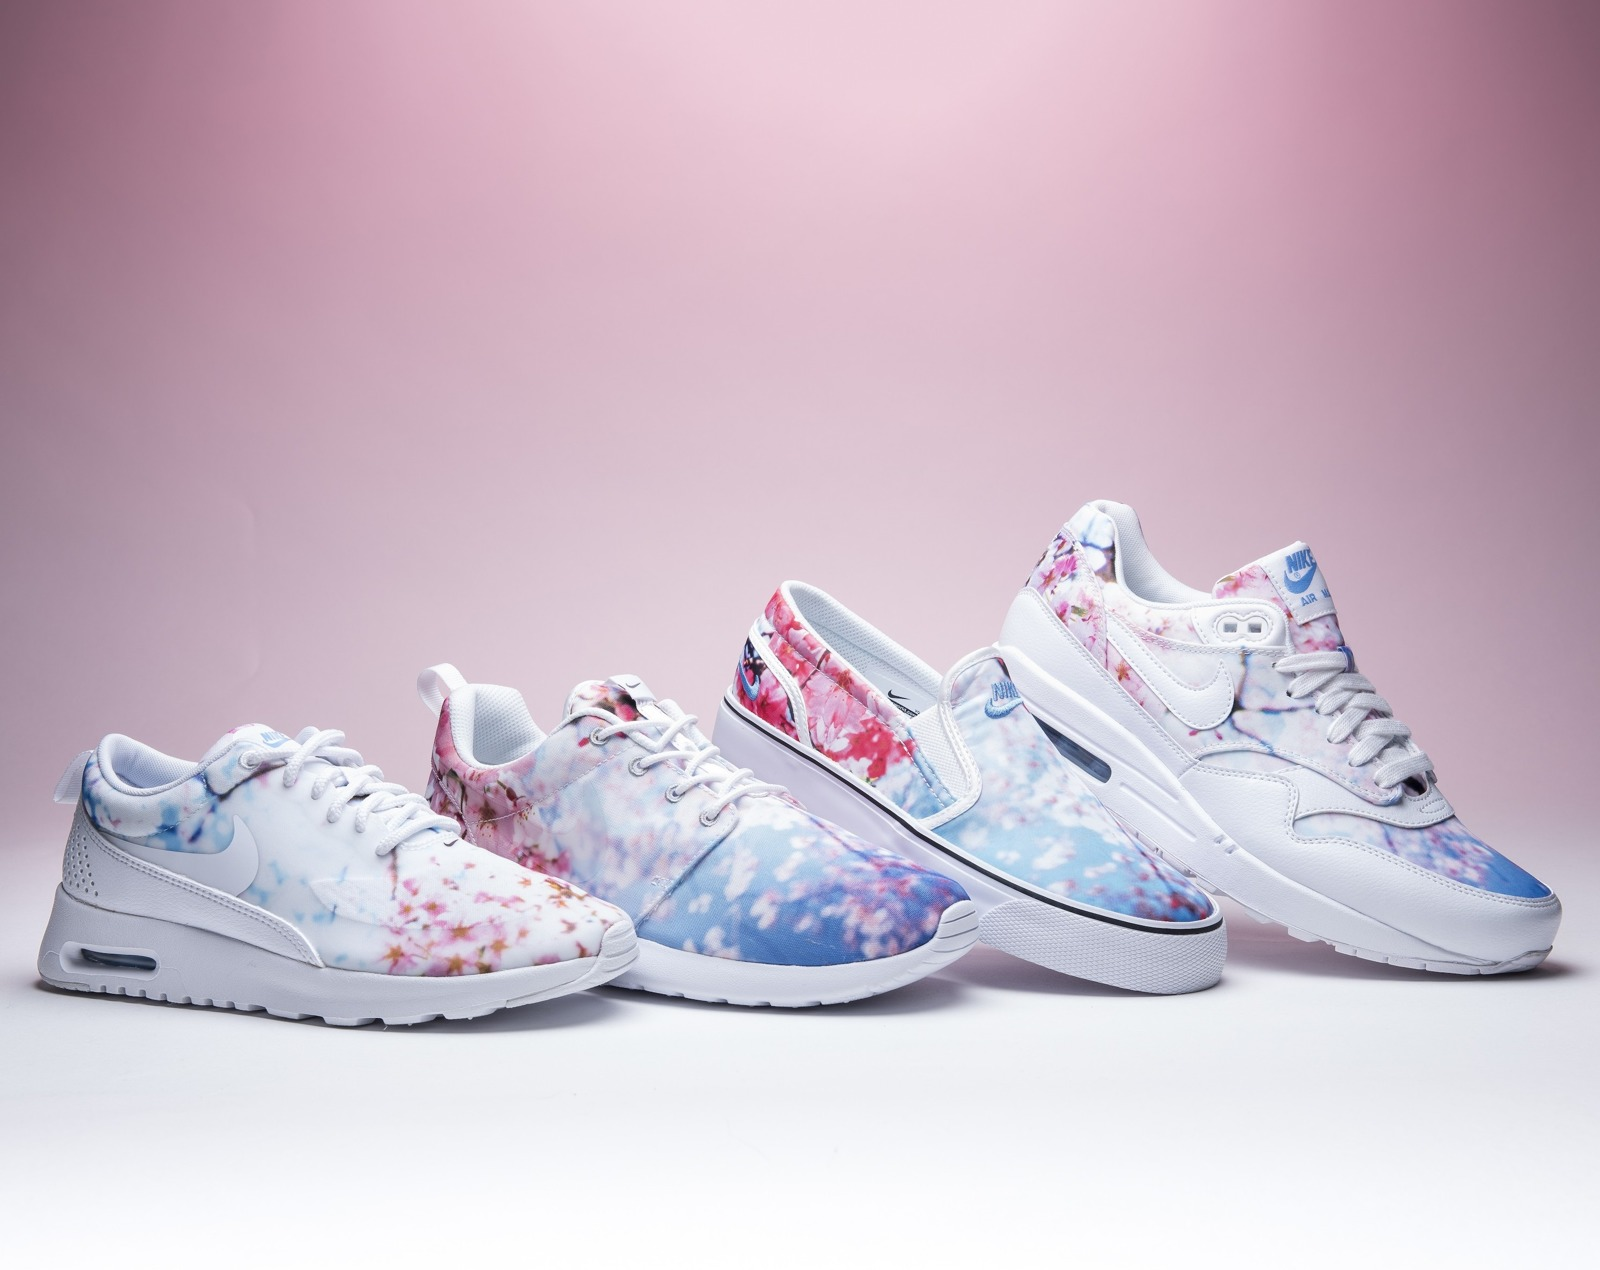 Femme chaussures Baskets Nike Air Max 1 Print Cherry Blossom Pack